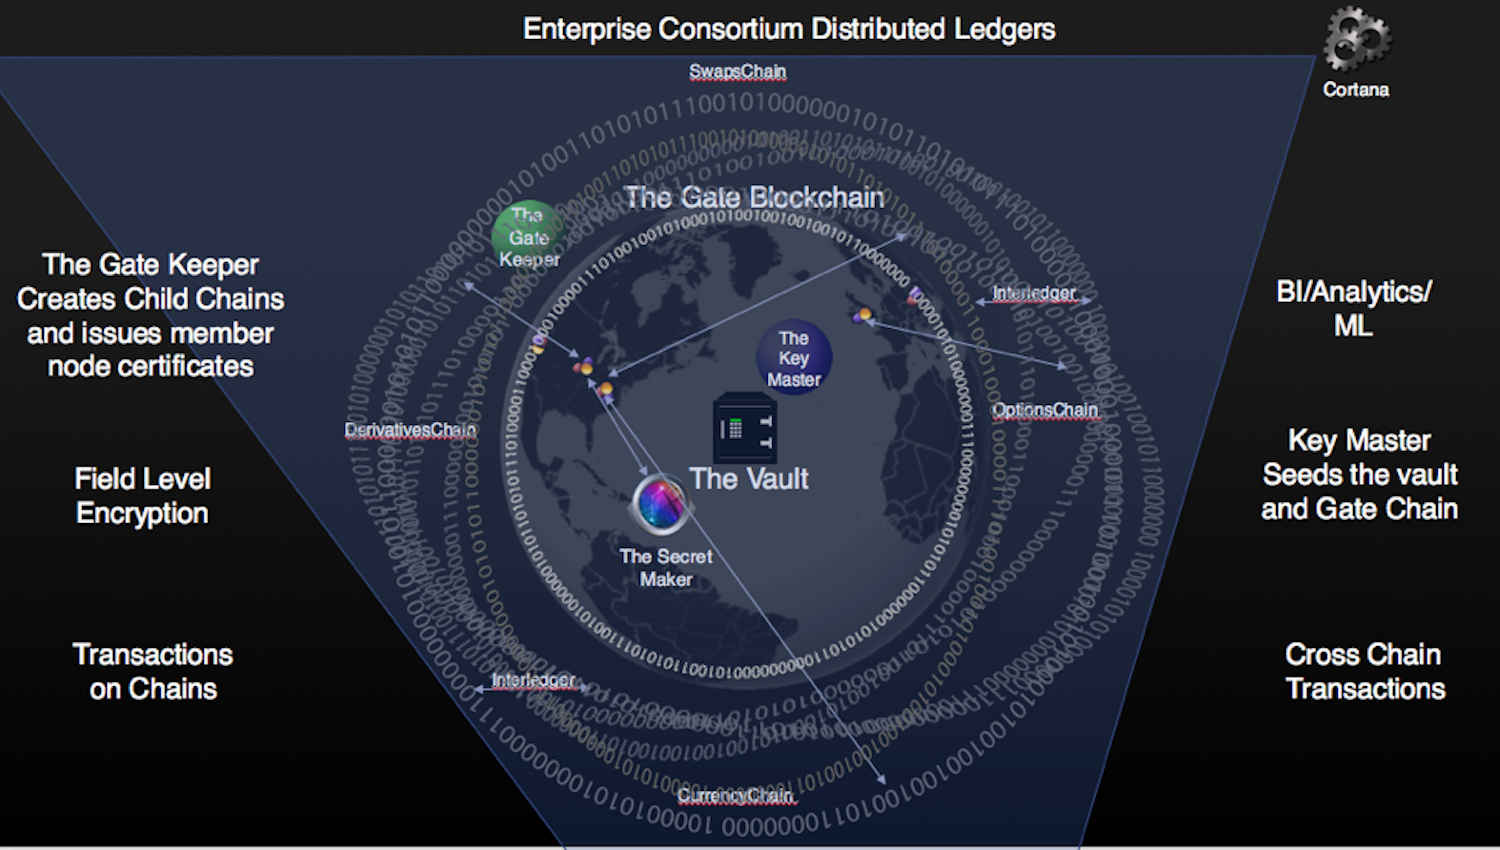 Enterprise Consortium Distributed Ledgers